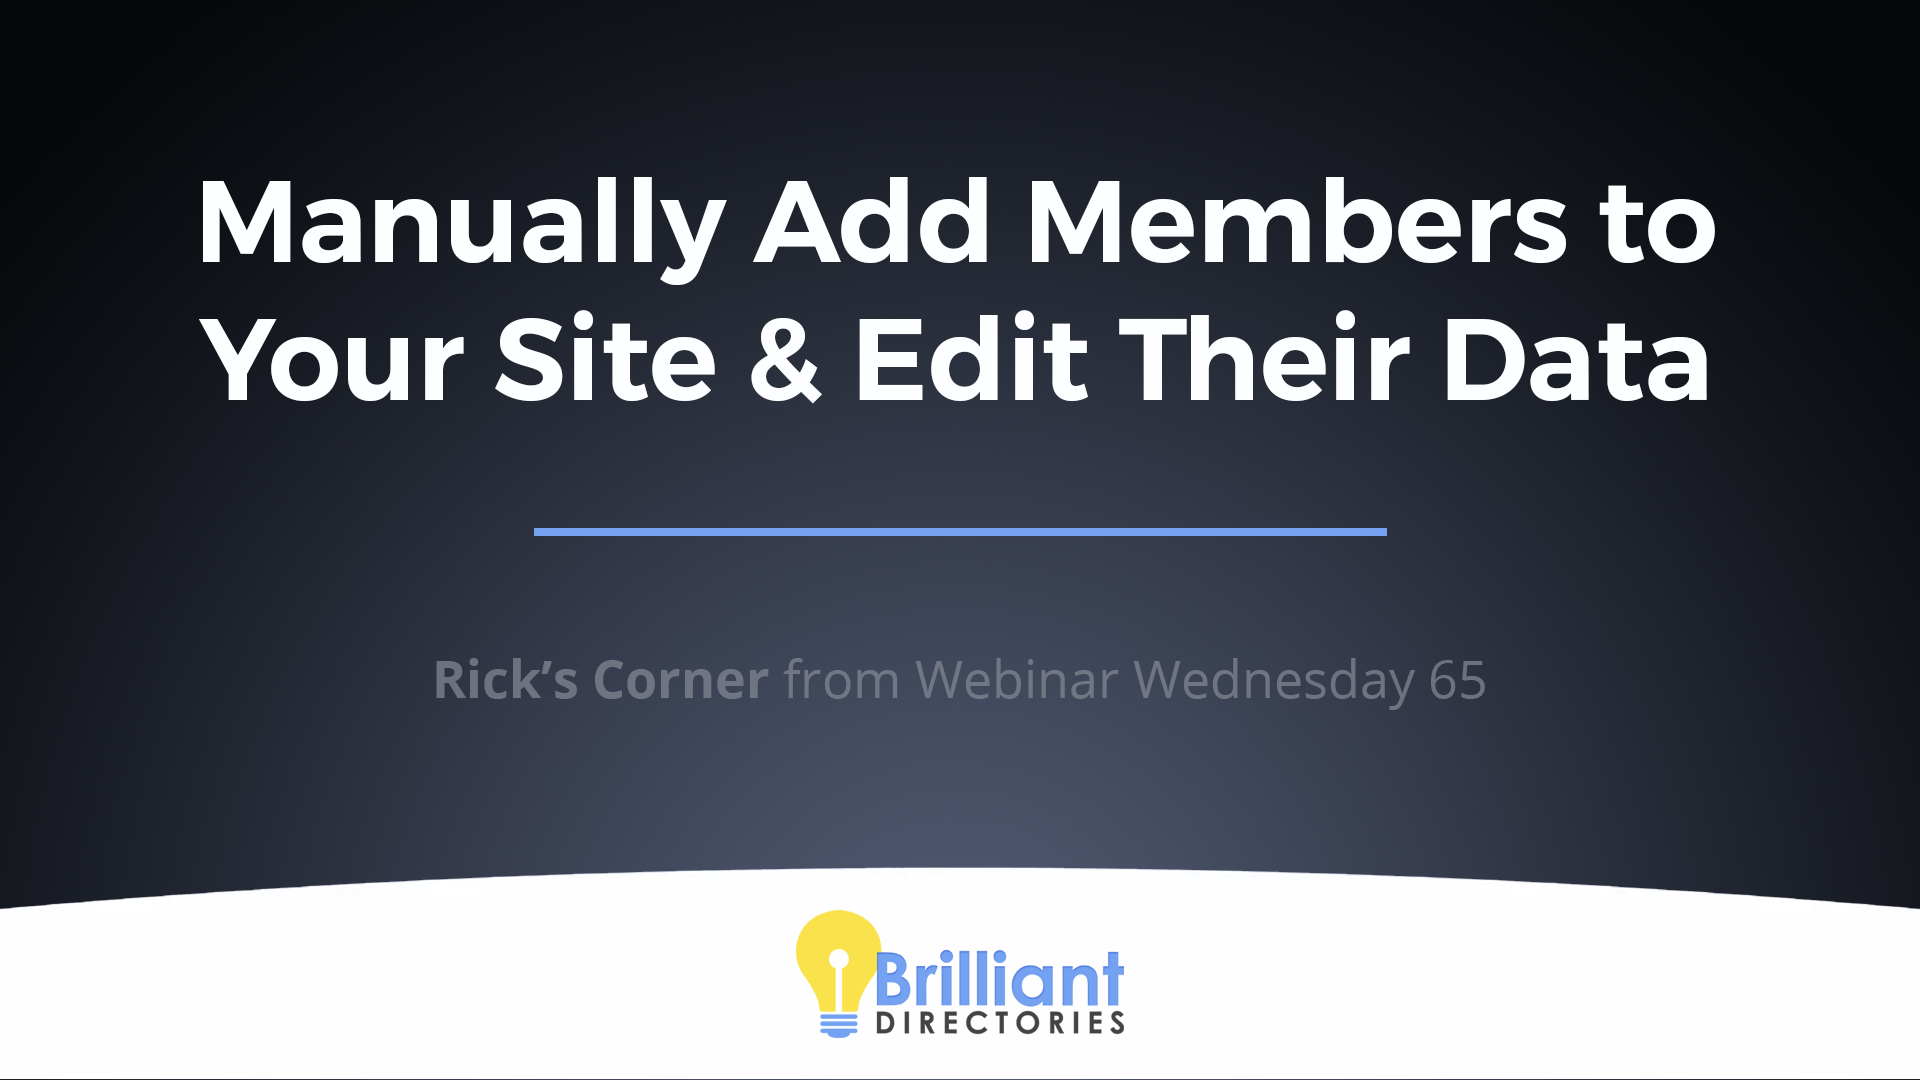 https://www.brilliantdirectories.com/blog/how-to-manually-add-members-to-your-directory